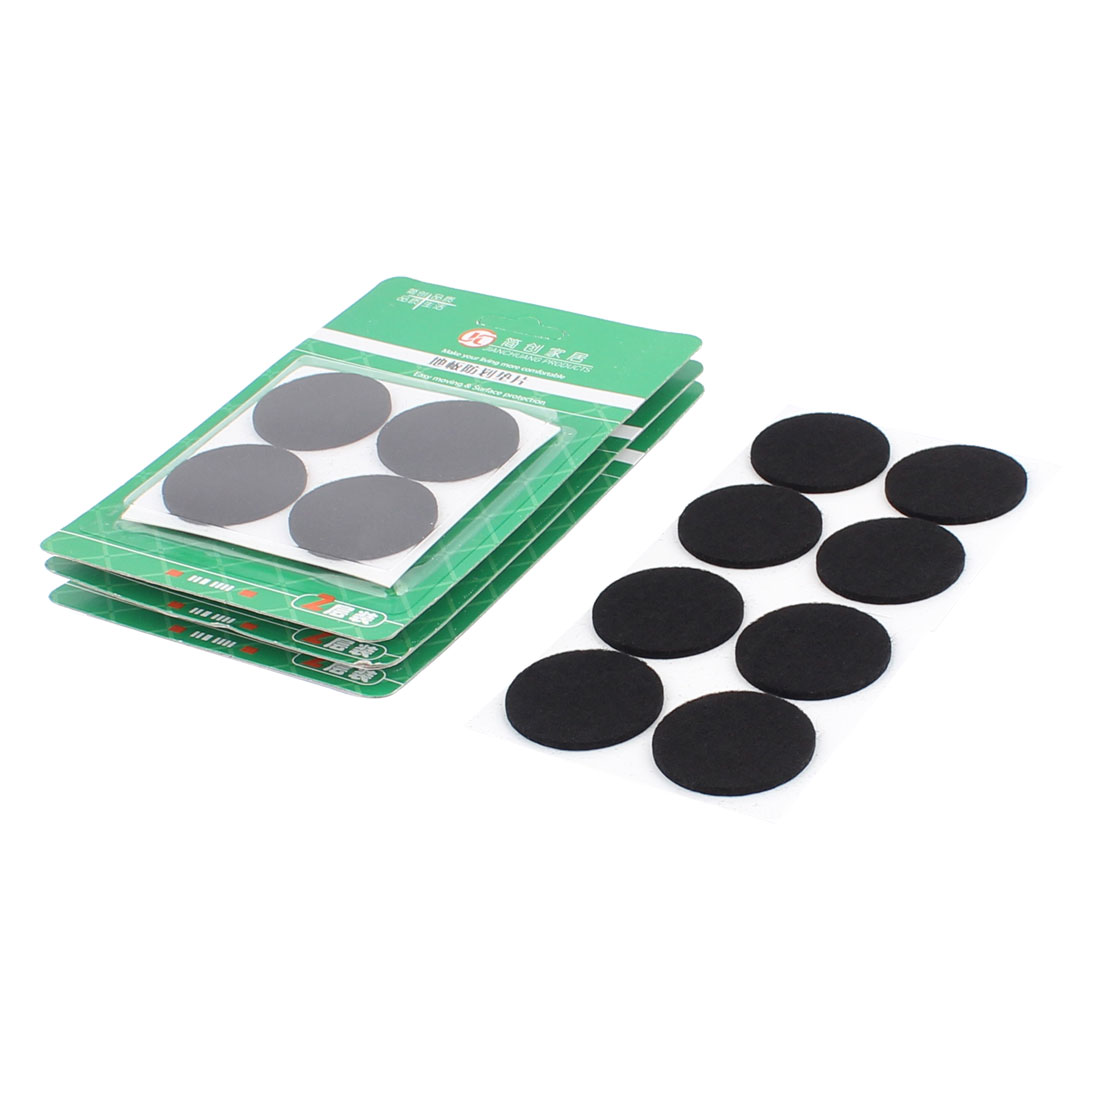 Cabinet Chair Desk Legs Self Stick Surface Protect Furniture Felt Pads Cushions Black 38mm Diameter 32pcs